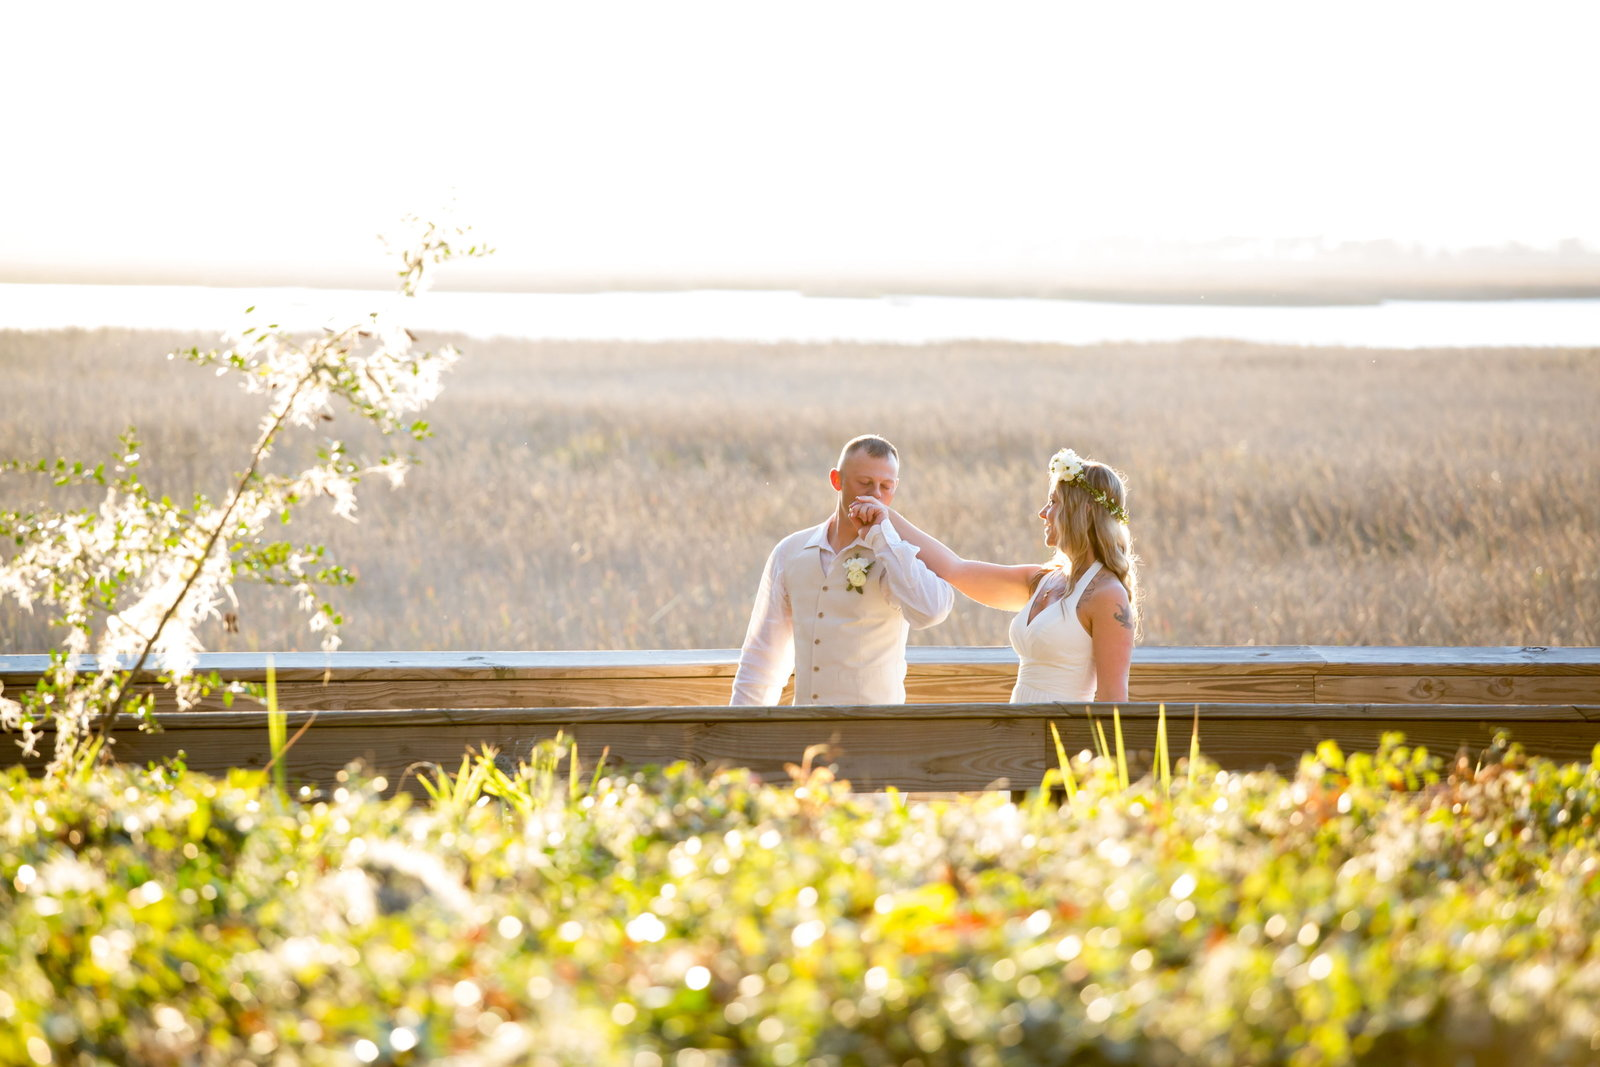 Jekyll Island Elopement, Bobbi Brinkman Photography, Dustin & Winter